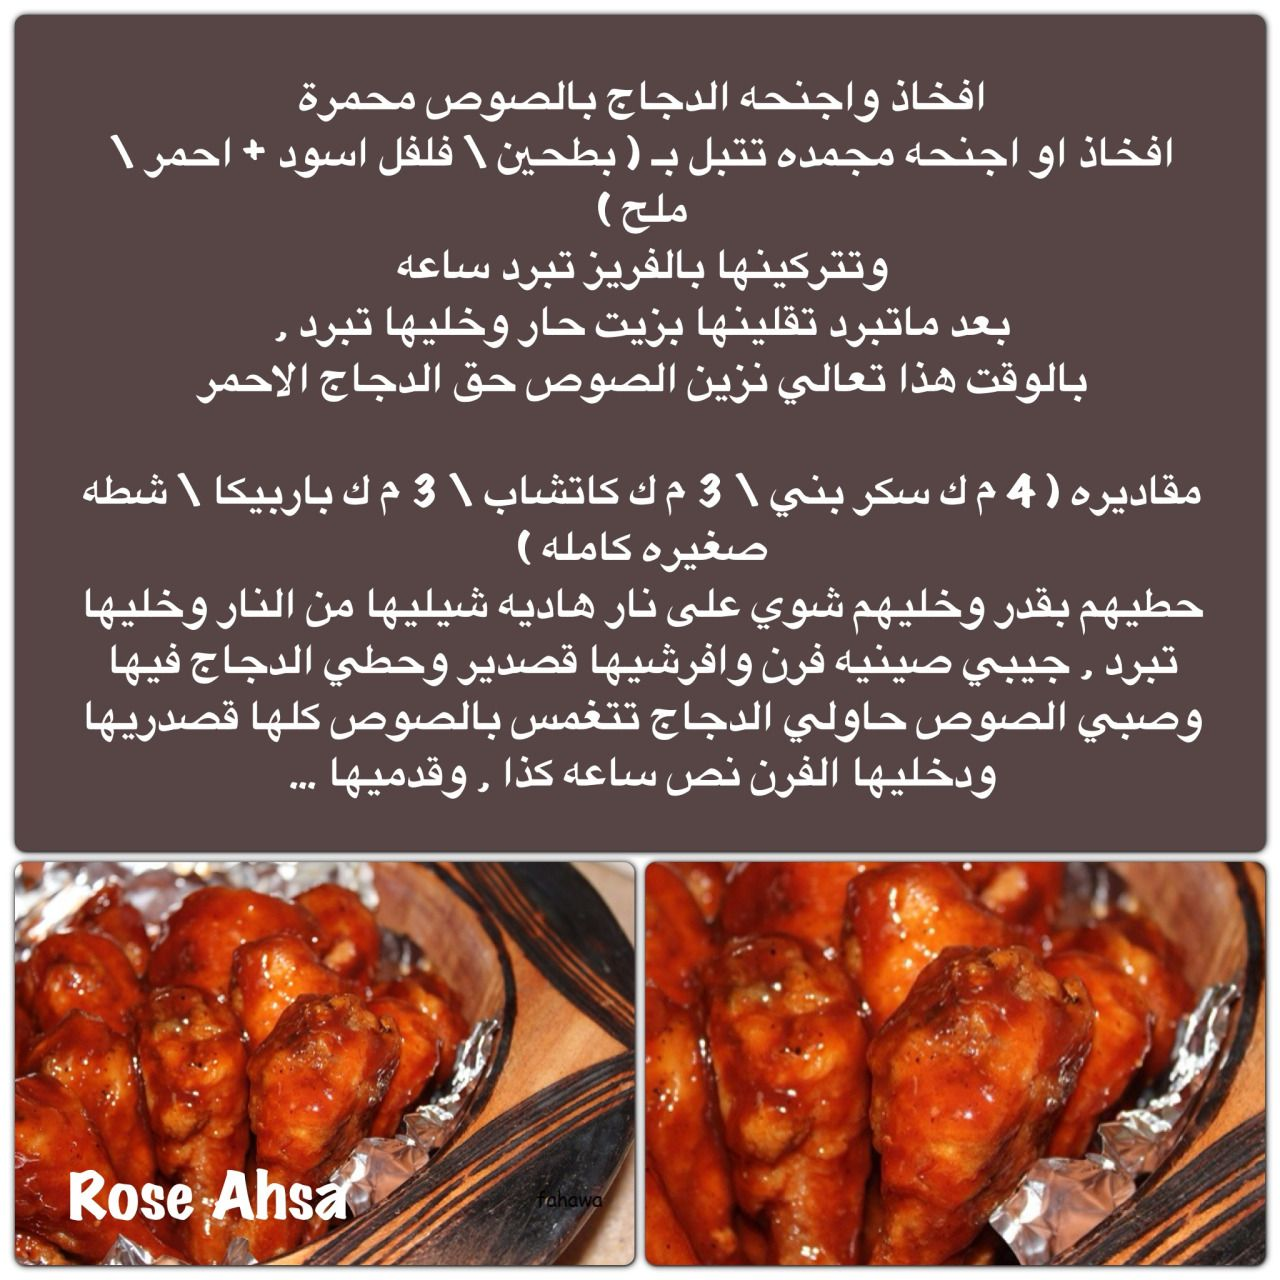 Pin By Fatima Mohammed On طبخات مكتوبة Cookout Food Diy Food Recipes Food Receipes